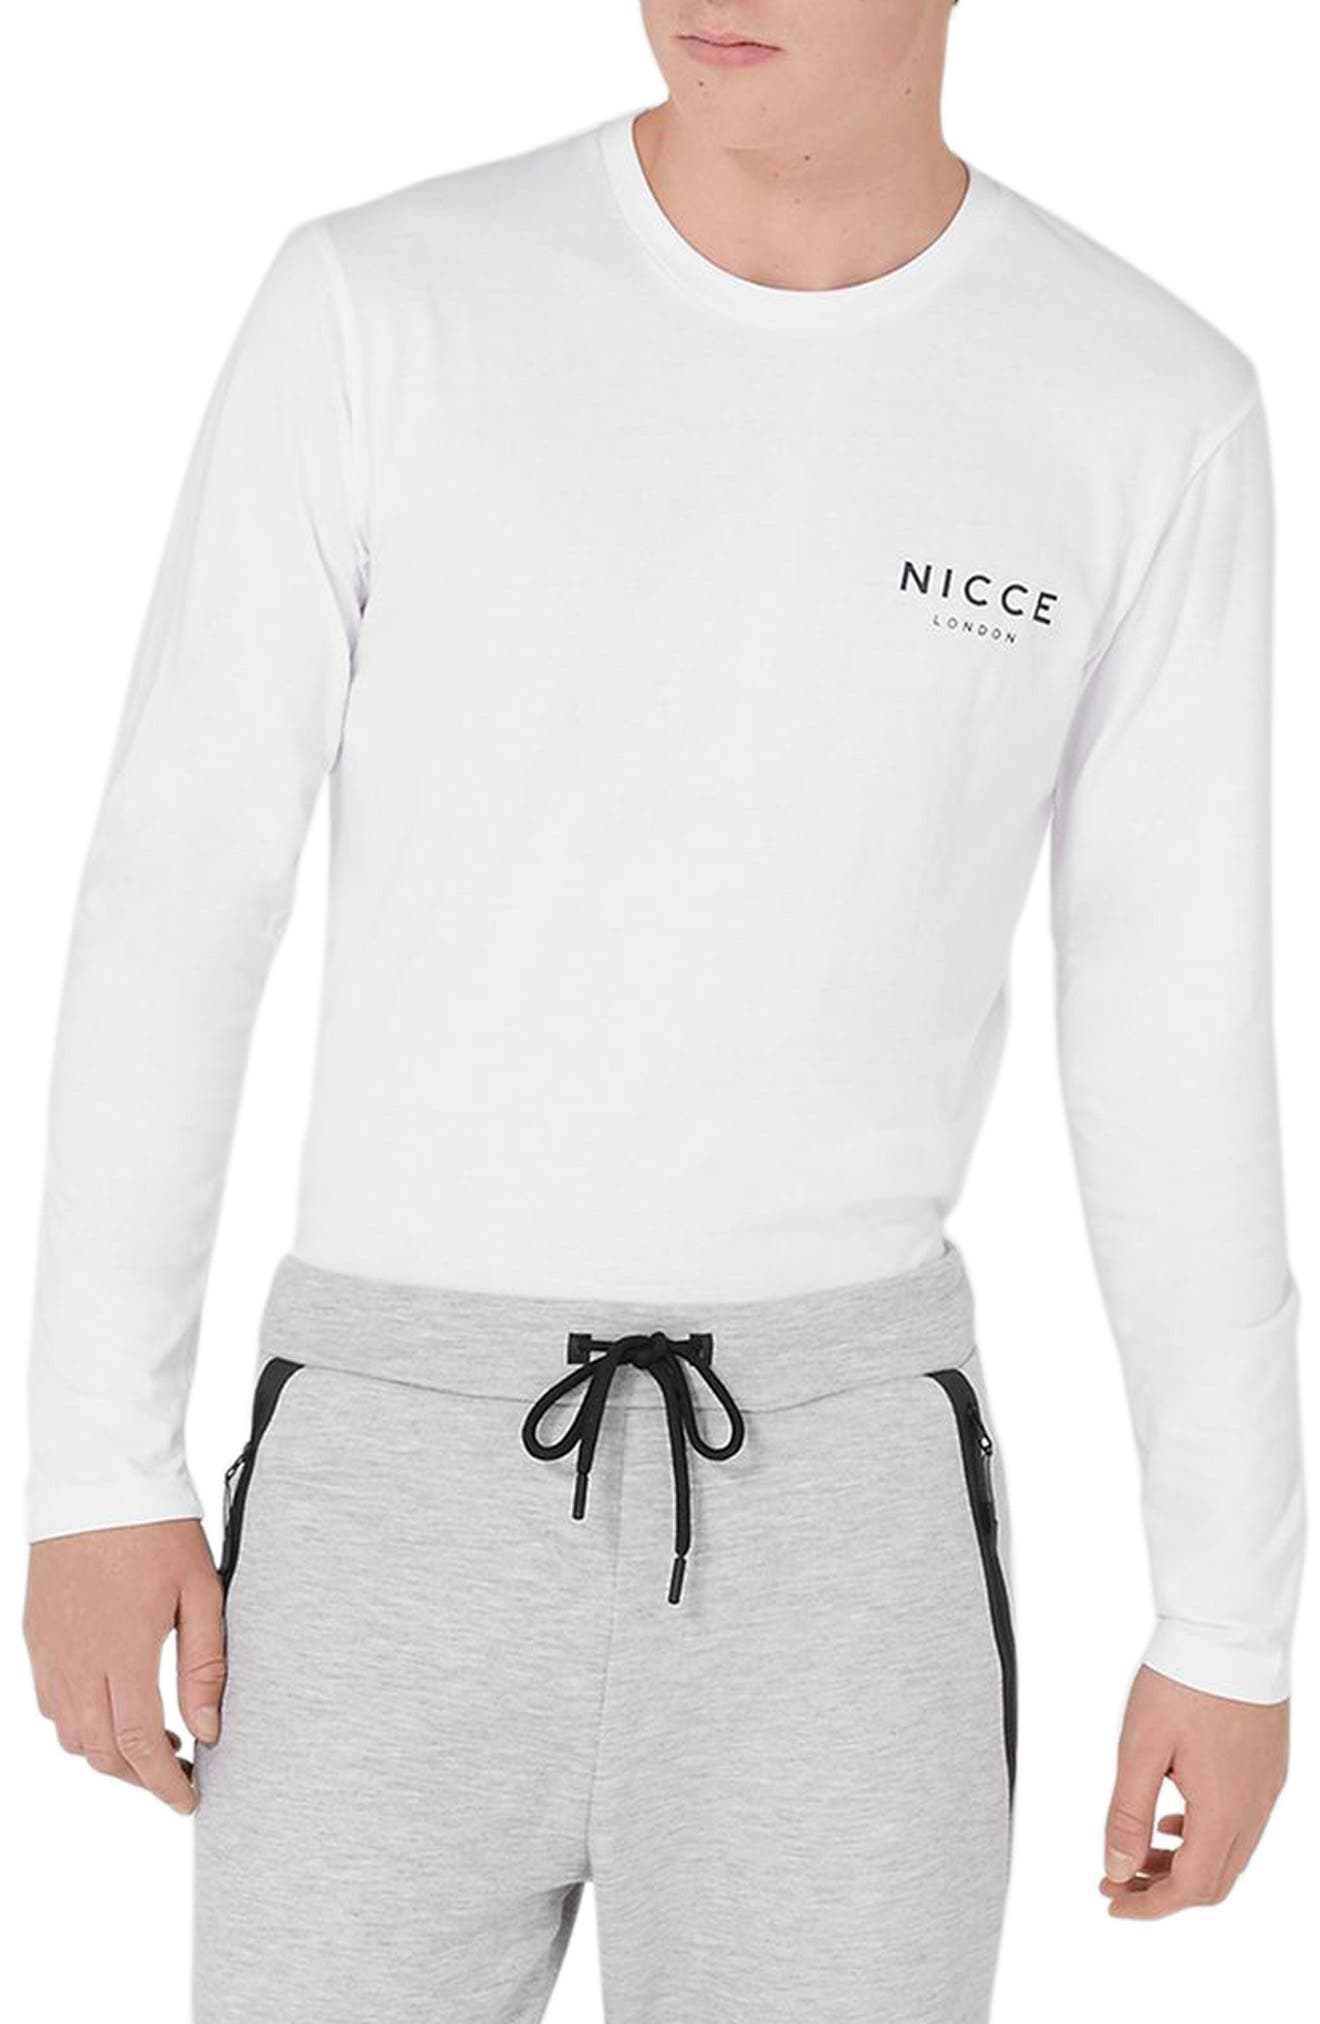 Topman NICCE Graphic Long Sleeve T-Shirt